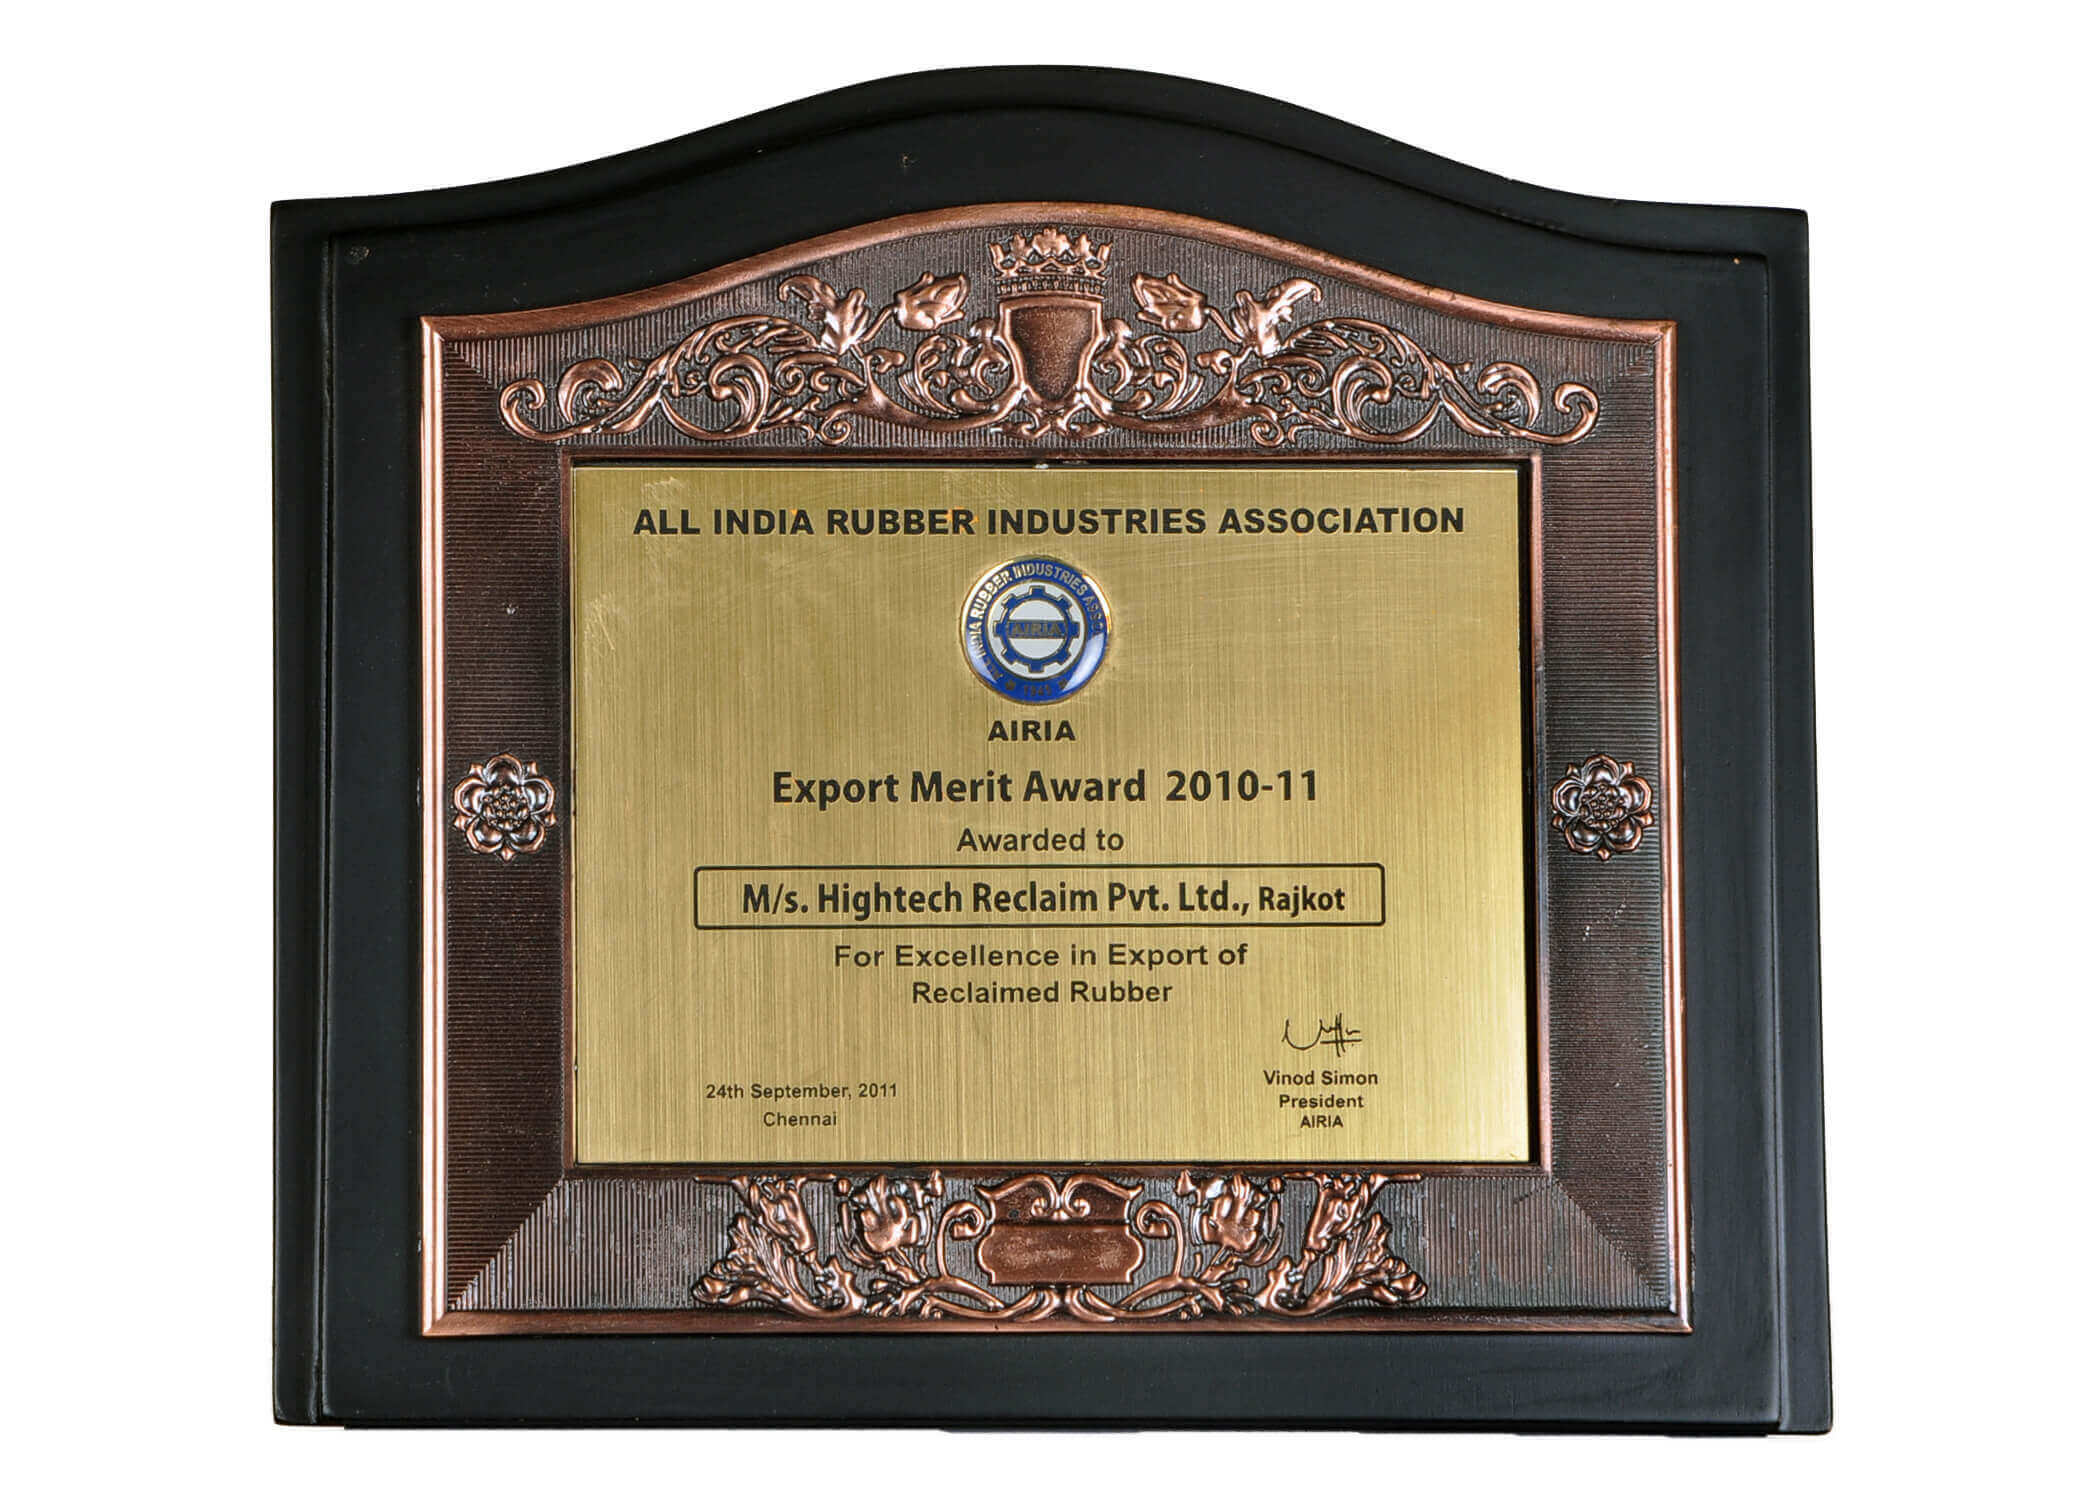 Export Award for Reclaimed Rubber